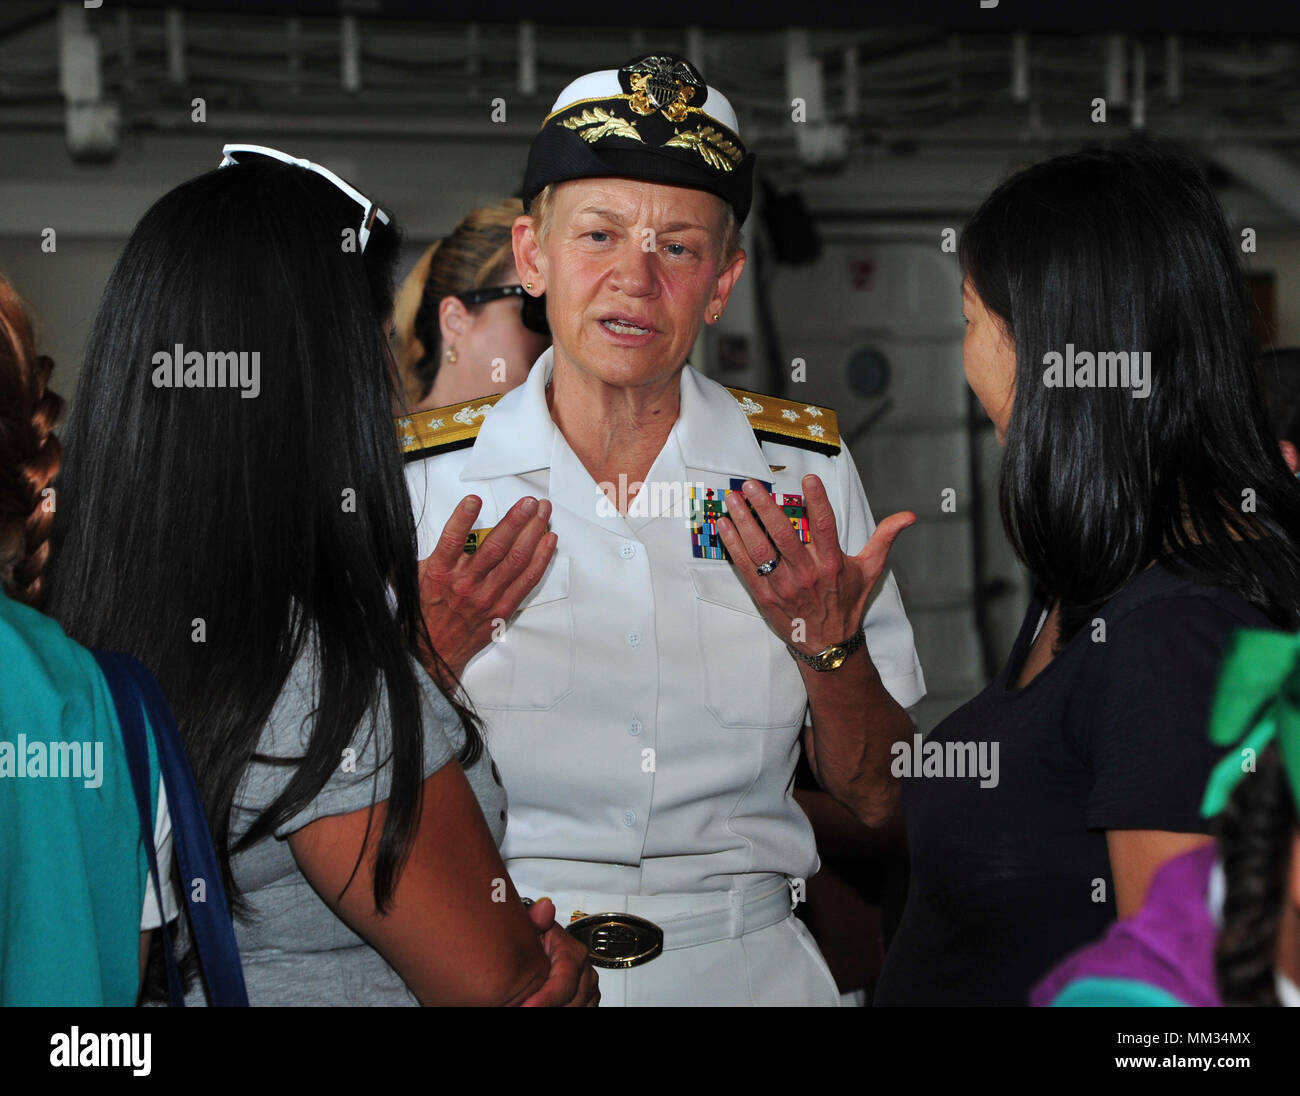 LOS ANGELES (Sep. 2, 2017) Vice Adm. Nora Tyson, commander, U.S. 3rd Fleet, speaks with Girl Scout parents aboard the San Antonio-class amphibious transport dock USS Anchorage (LPD 23) during the second annual Los Angeles Fleet Week, Sep. 2. LA Fleet Week offers the public an opportunity to tour ships, meet Sailors, Marines, and members of the Coast Guard and gain a better understanding of how the sea services support the national defense of the United States and freedom of the seas. (U.S. Navy photo by Mass Communication Specialist Seaman Natalie M.  Byers/Released) - Stock Image